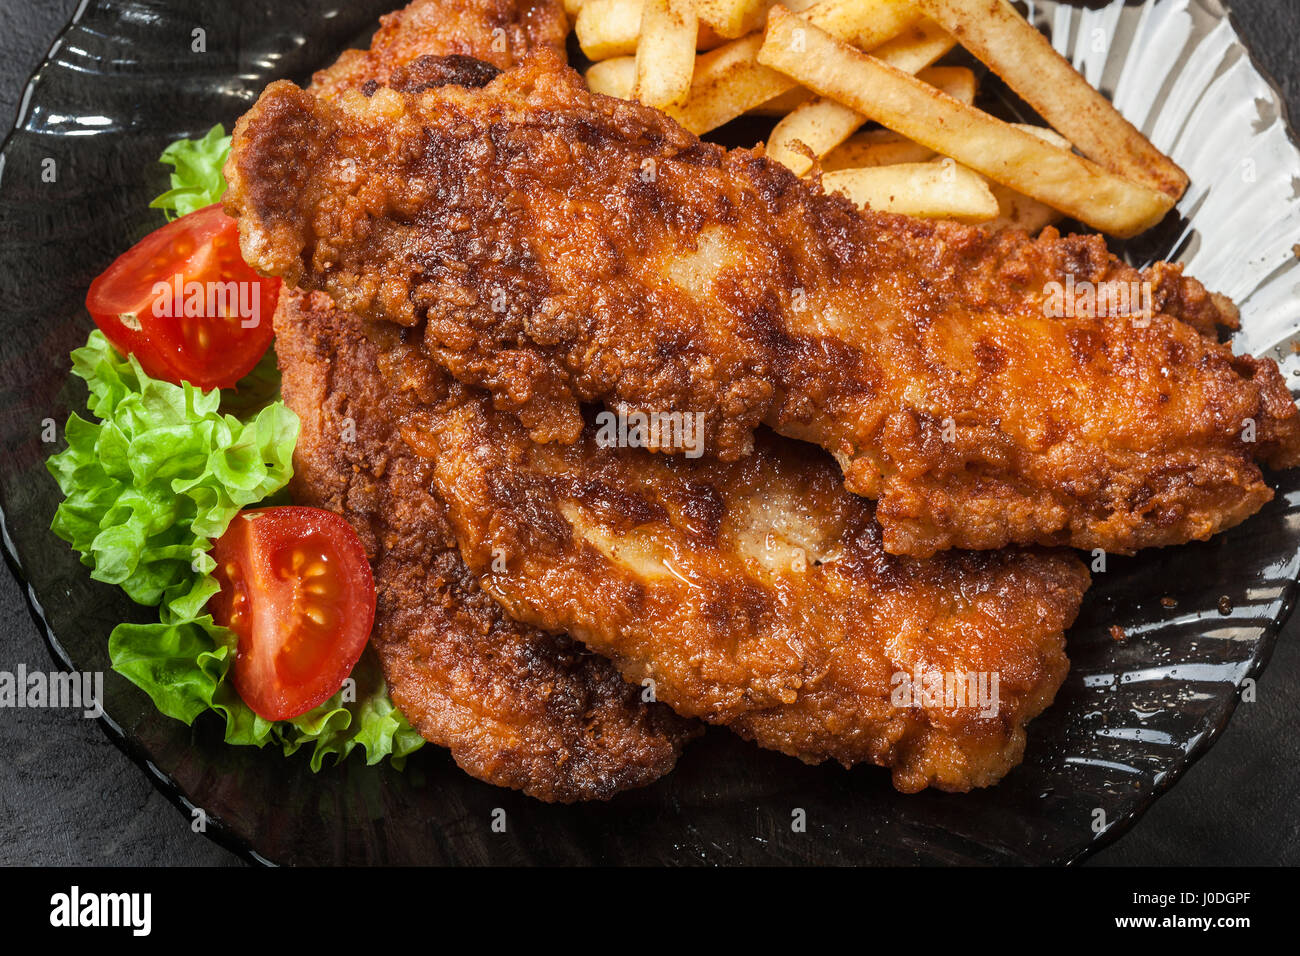 Fried fish in crispy batter with chips on a plate Stock Photo